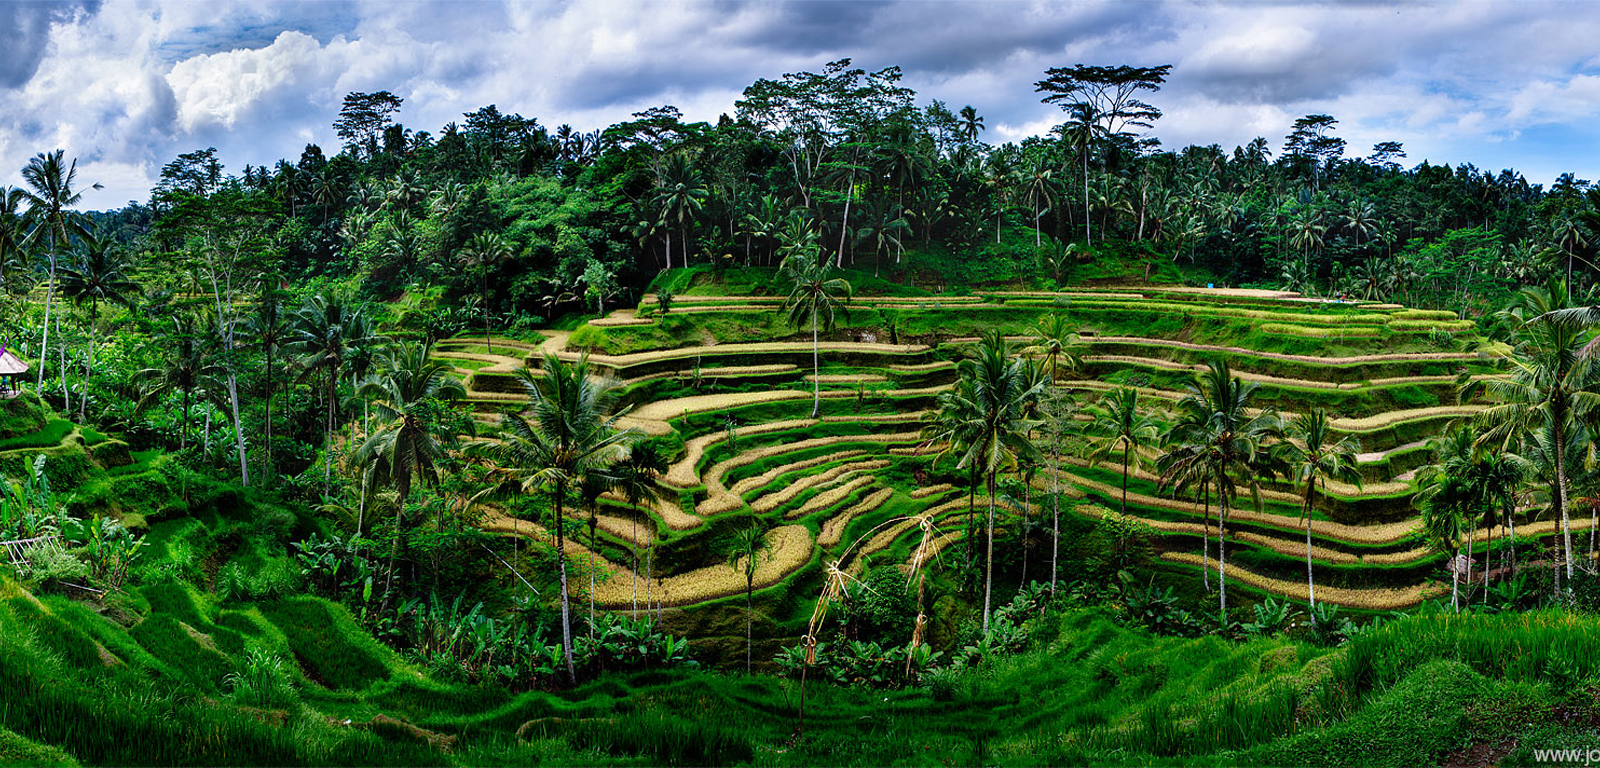 Discover Bali & Beyond in Indonesia Archipelago